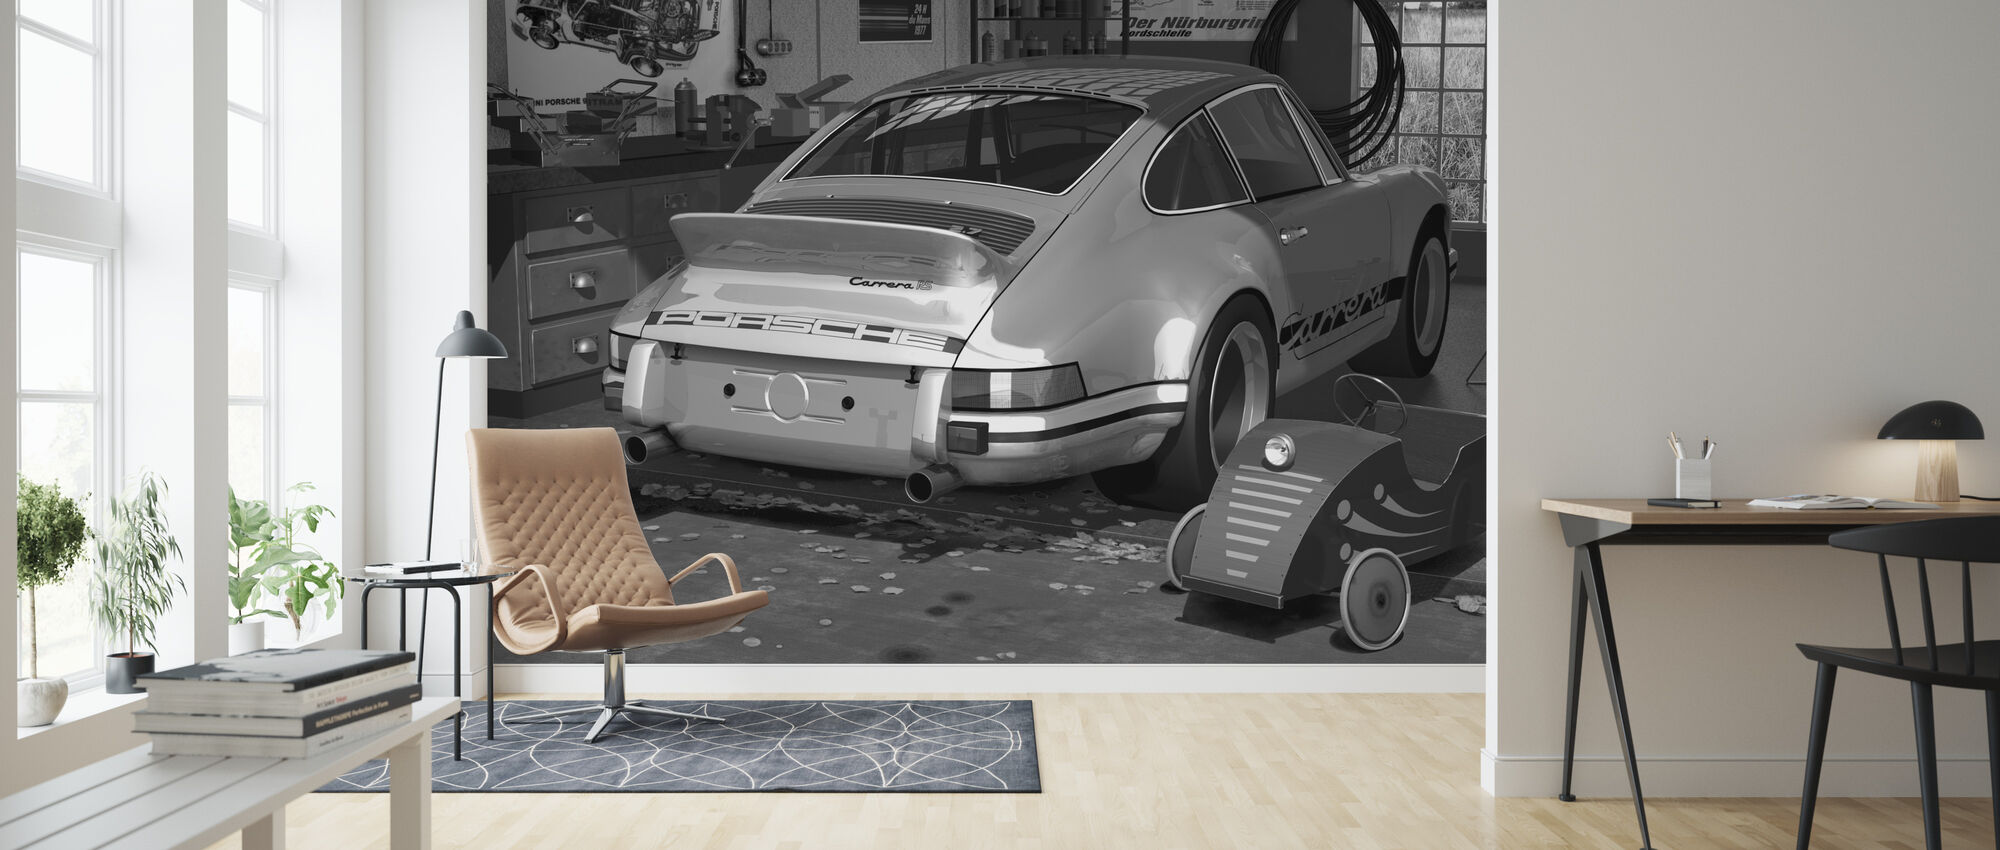 My first and second car - BW - Wallpaper - Living Room